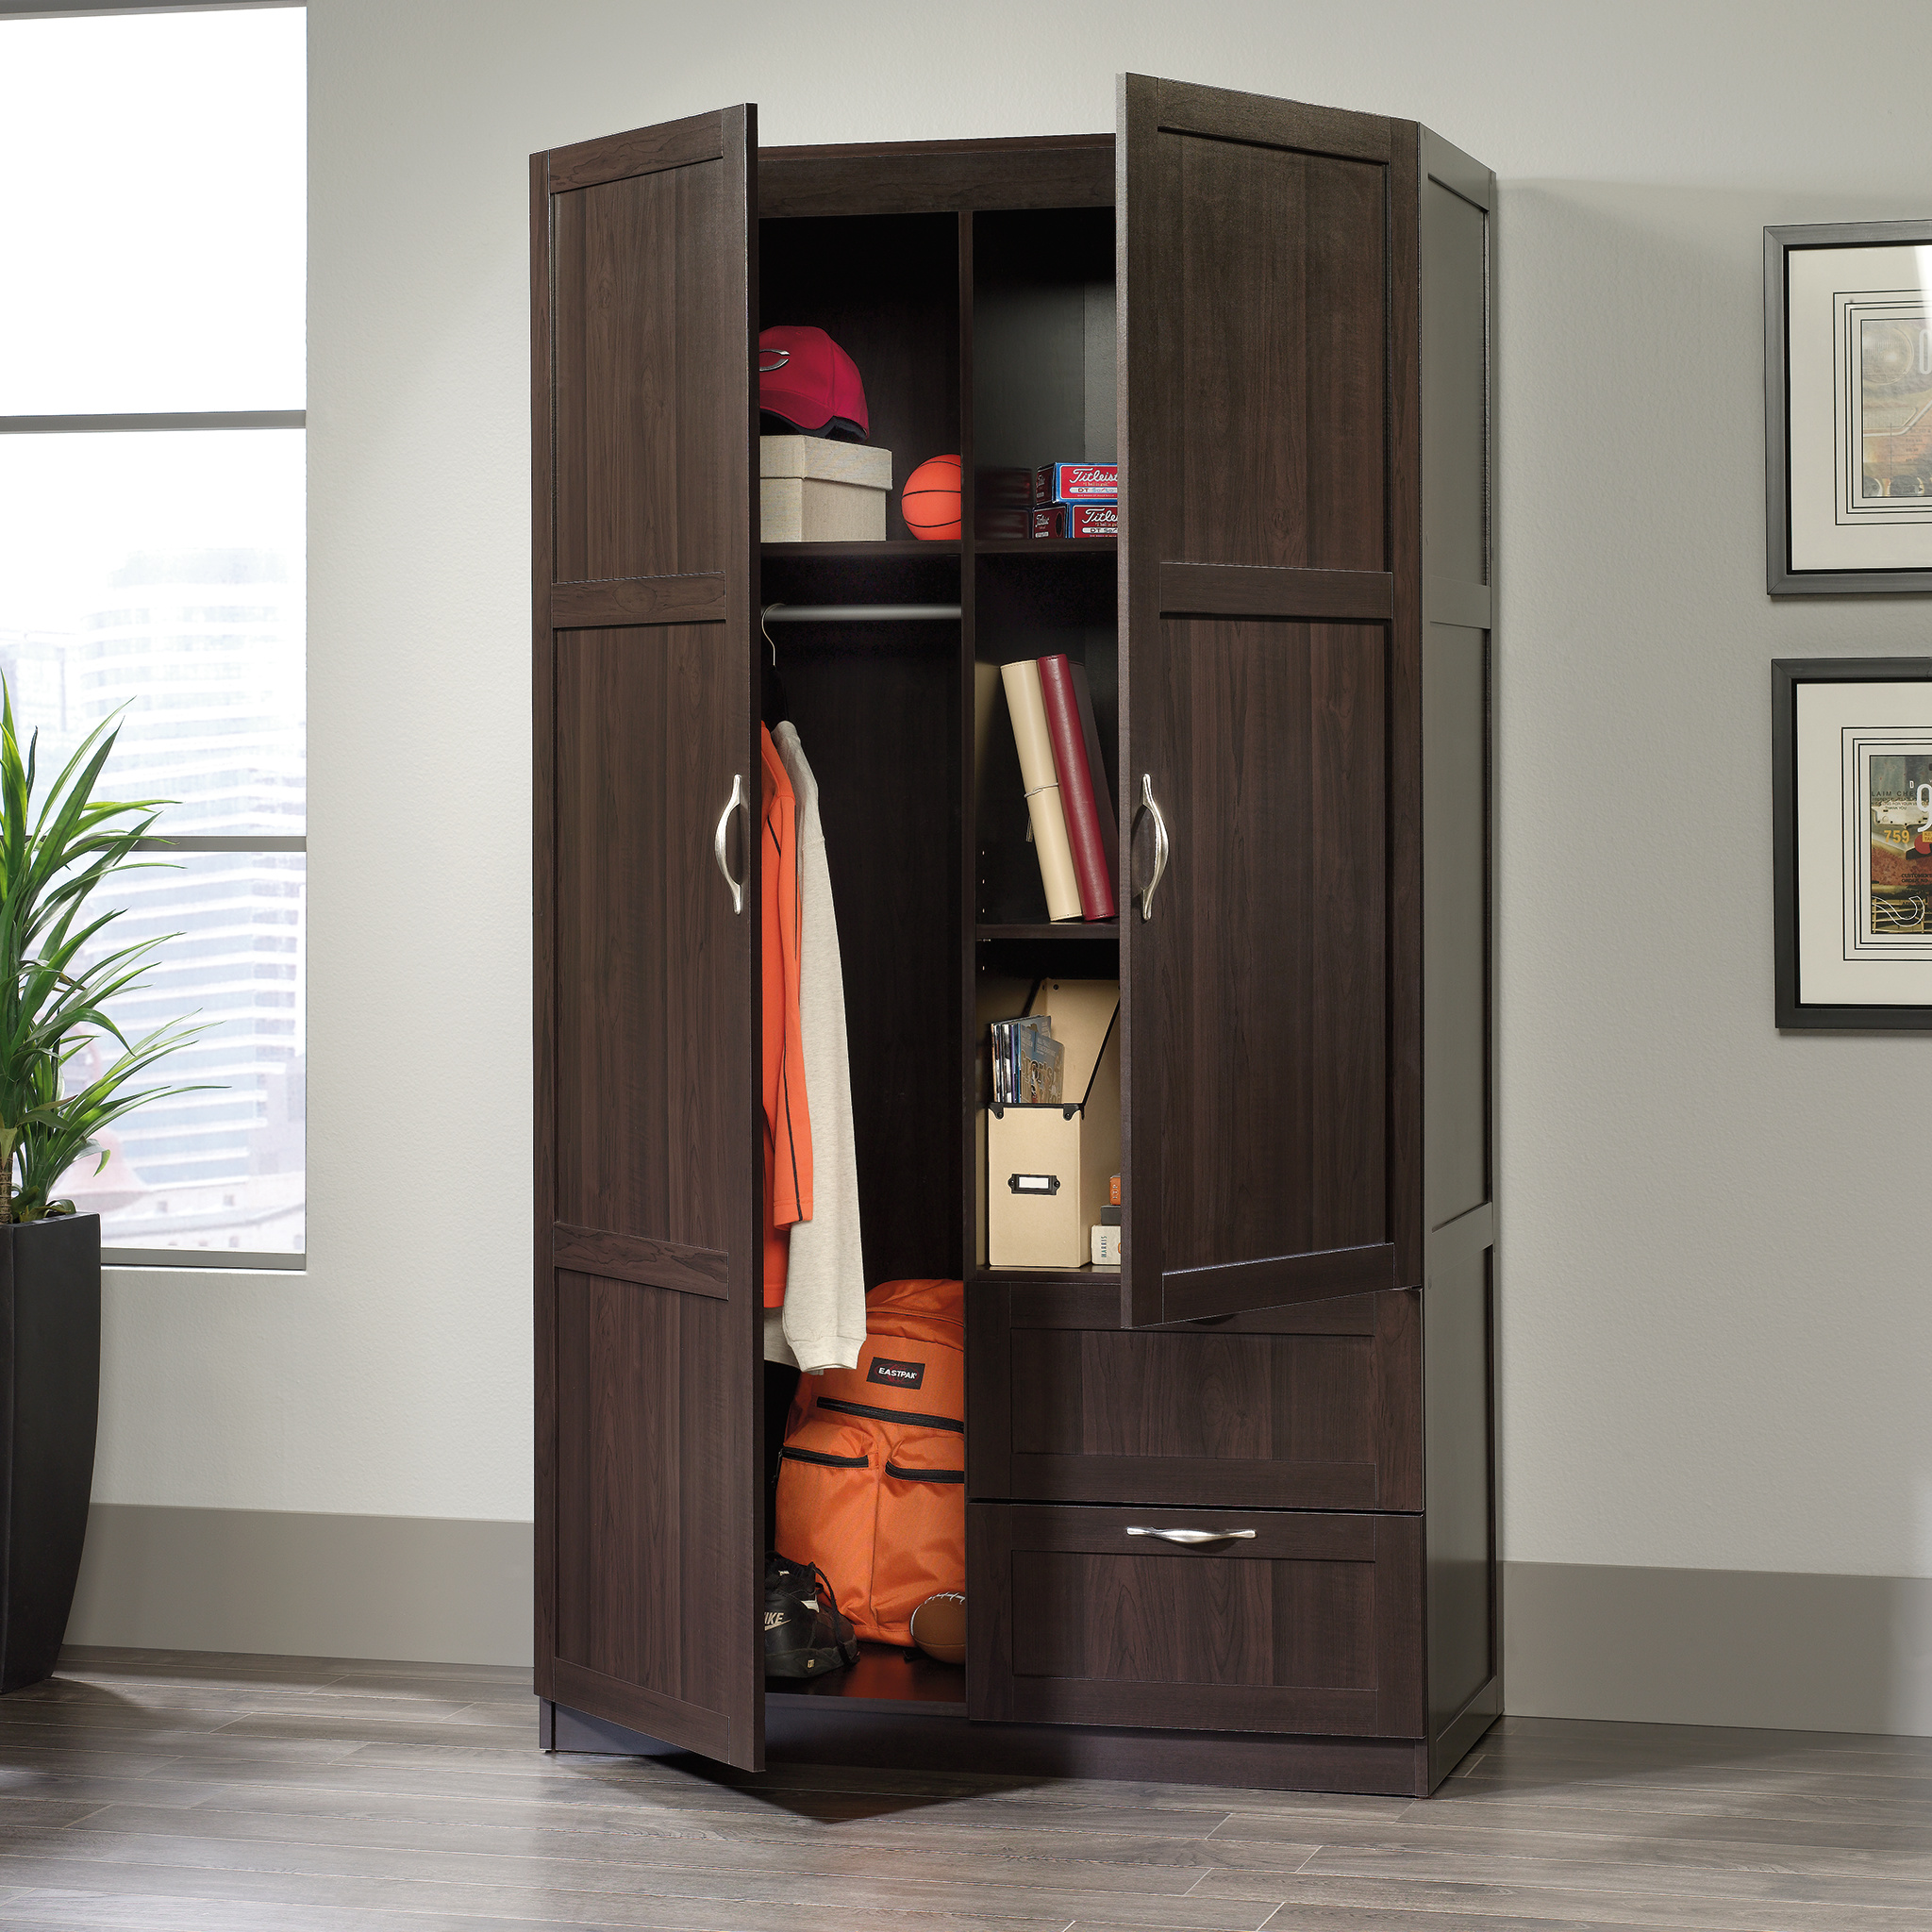 Sauder Select Storage Cabinet, Cinnamon Cherry Finish